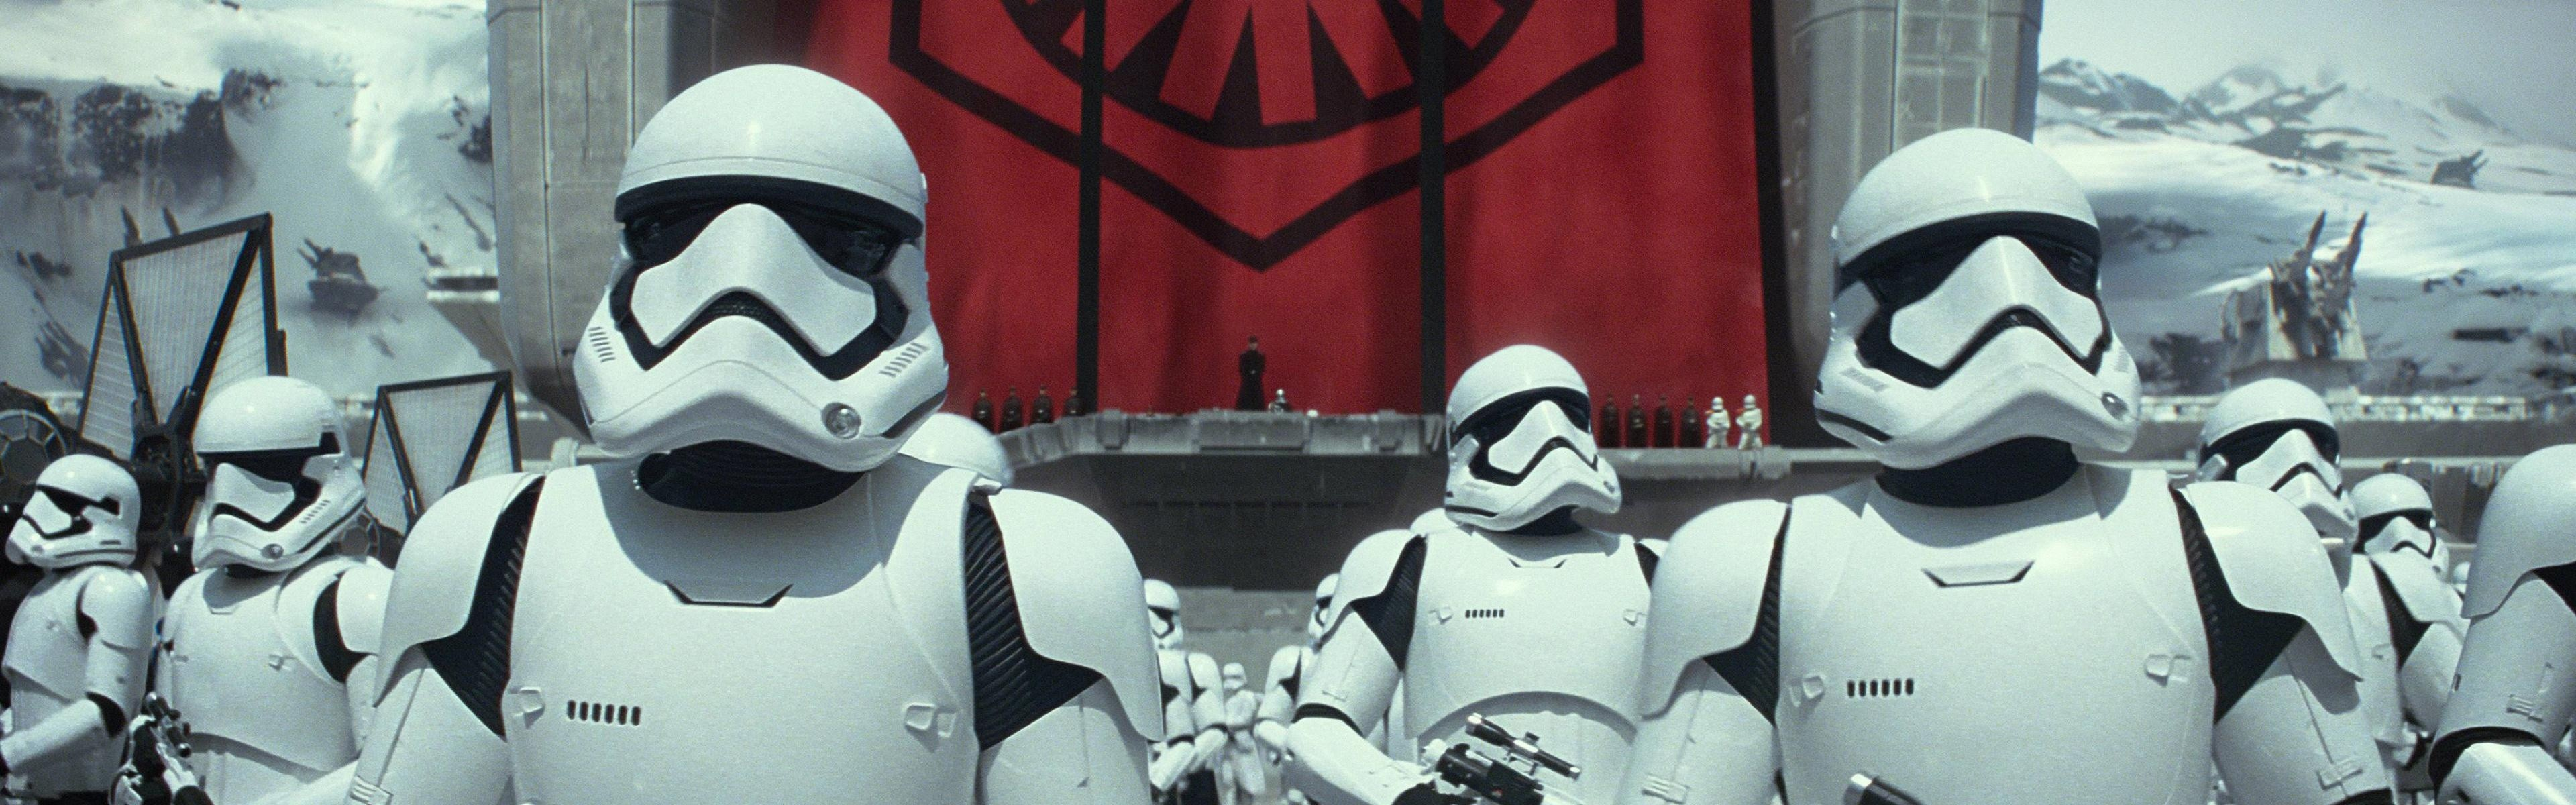 General 3840x1200 dual monitors Storm Troopers The First Order soldier stormtrooper Star Wars Star Wars: The Force Awakens